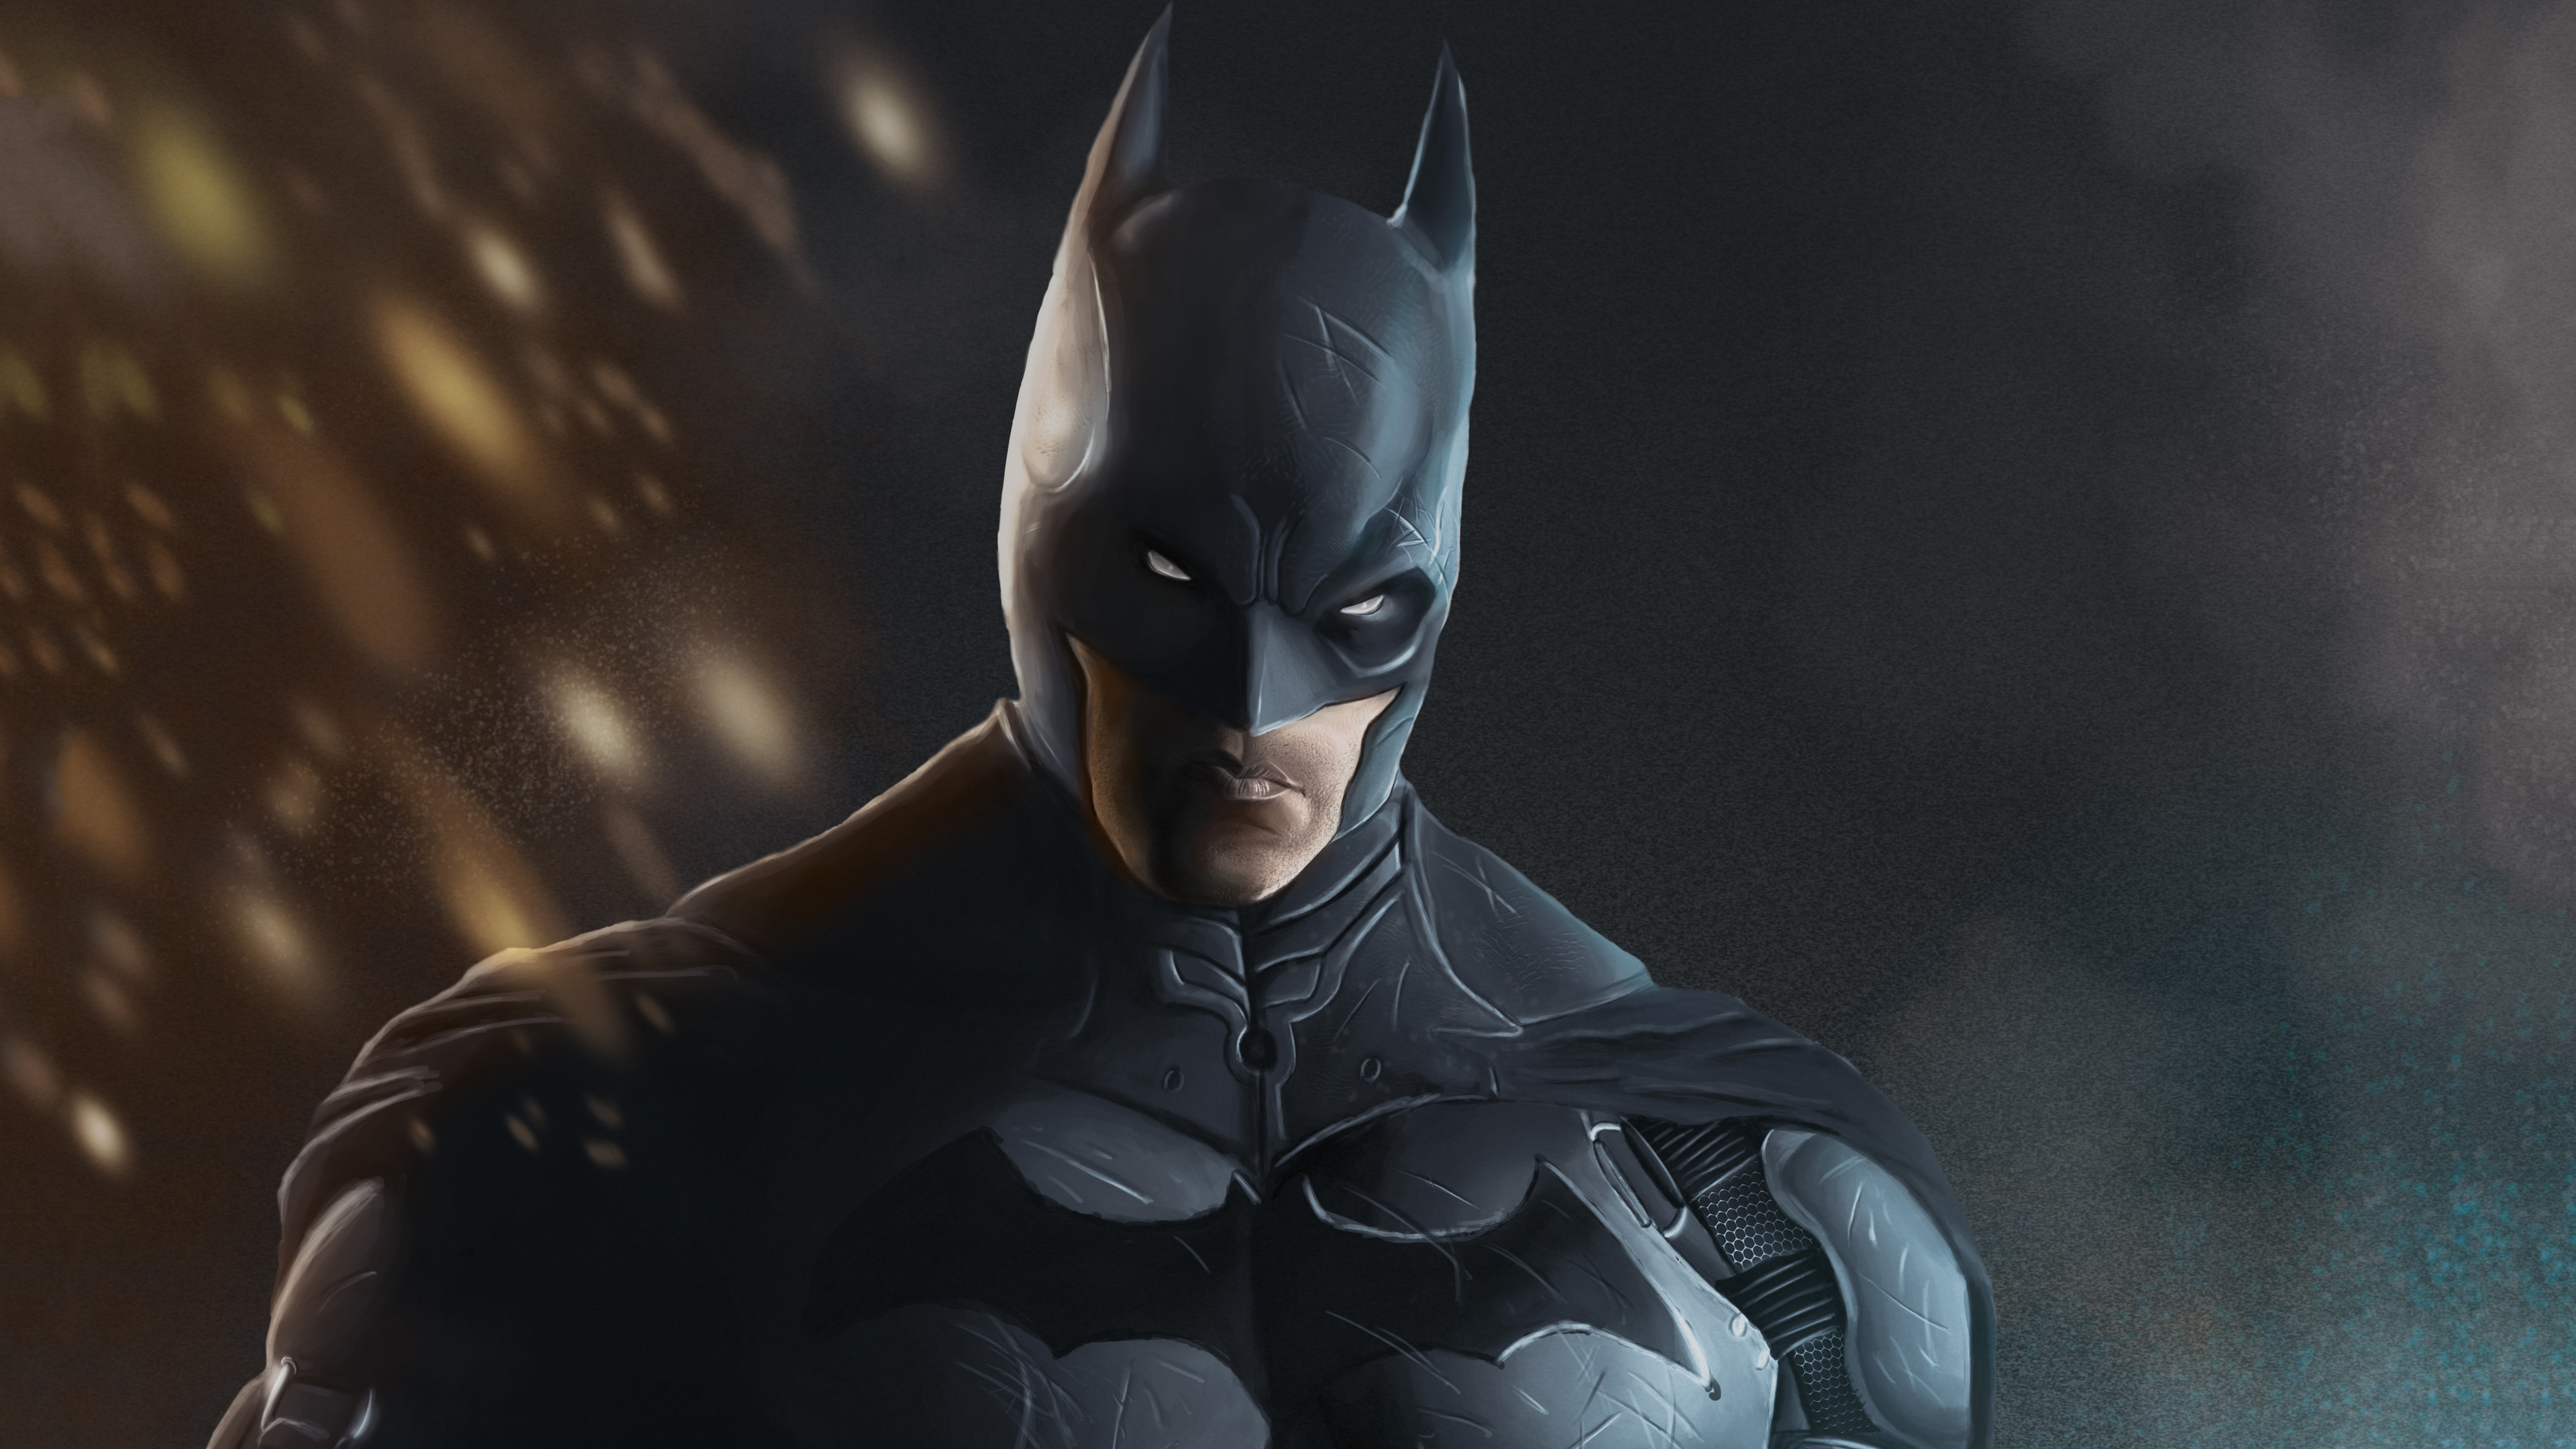 batman arkham knight 5k 1541294442 - Batman Arkham Knight 5k - superheroes wallpapers, hd-wallpapers, games wallpapers, batman wallpapers, batman arkham knight wallpapers, artwork wallpapers, 5k wallpapers, 4k-wallpapers